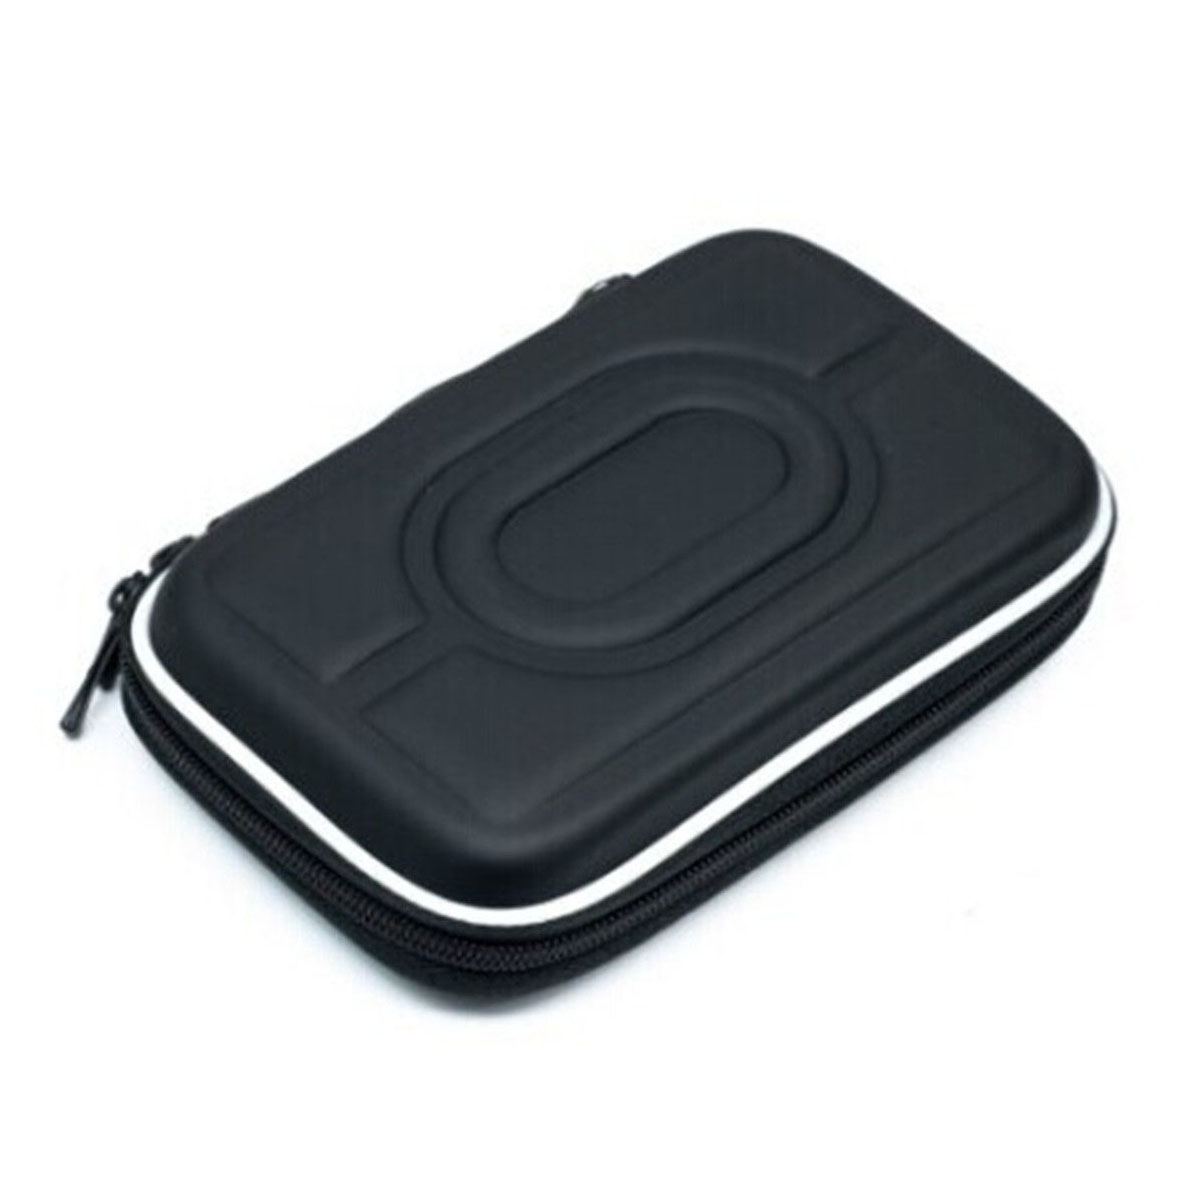 "Laptop hard drive,2.5"" External Case Pouch PC Laptop USB Hard Drive Disk Holde"